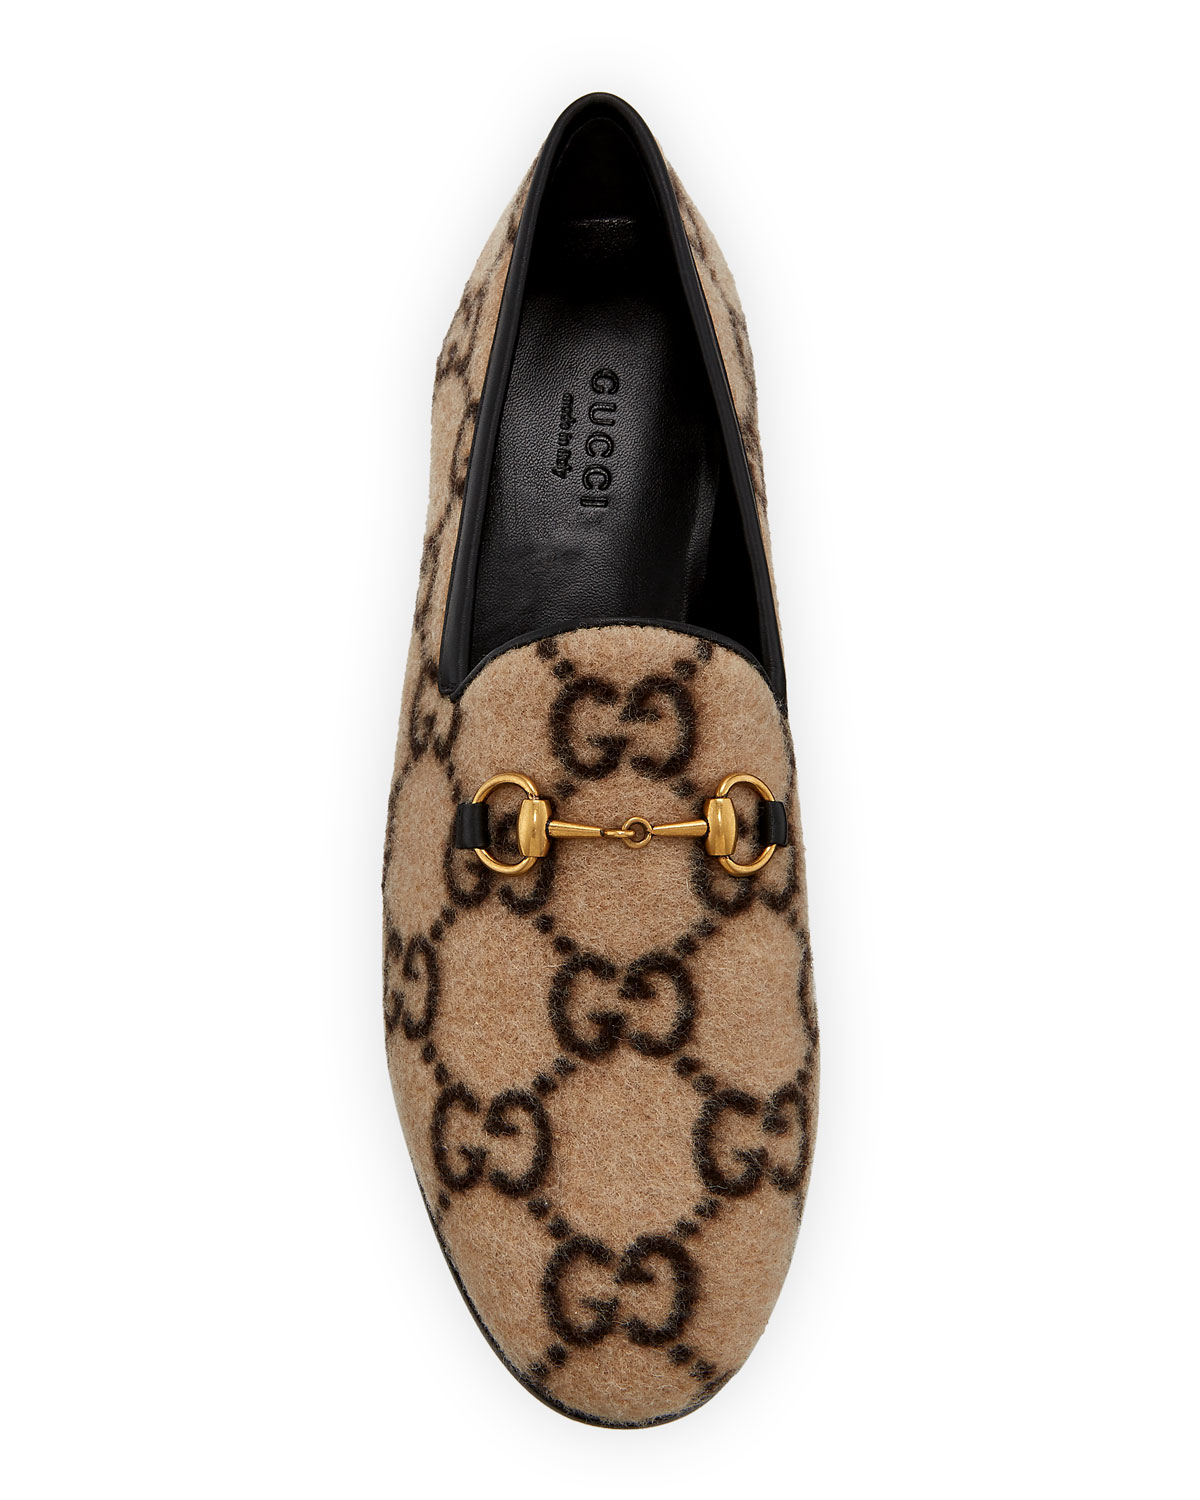 Jordaan Flat Gg Flannel Loafers by Gucci